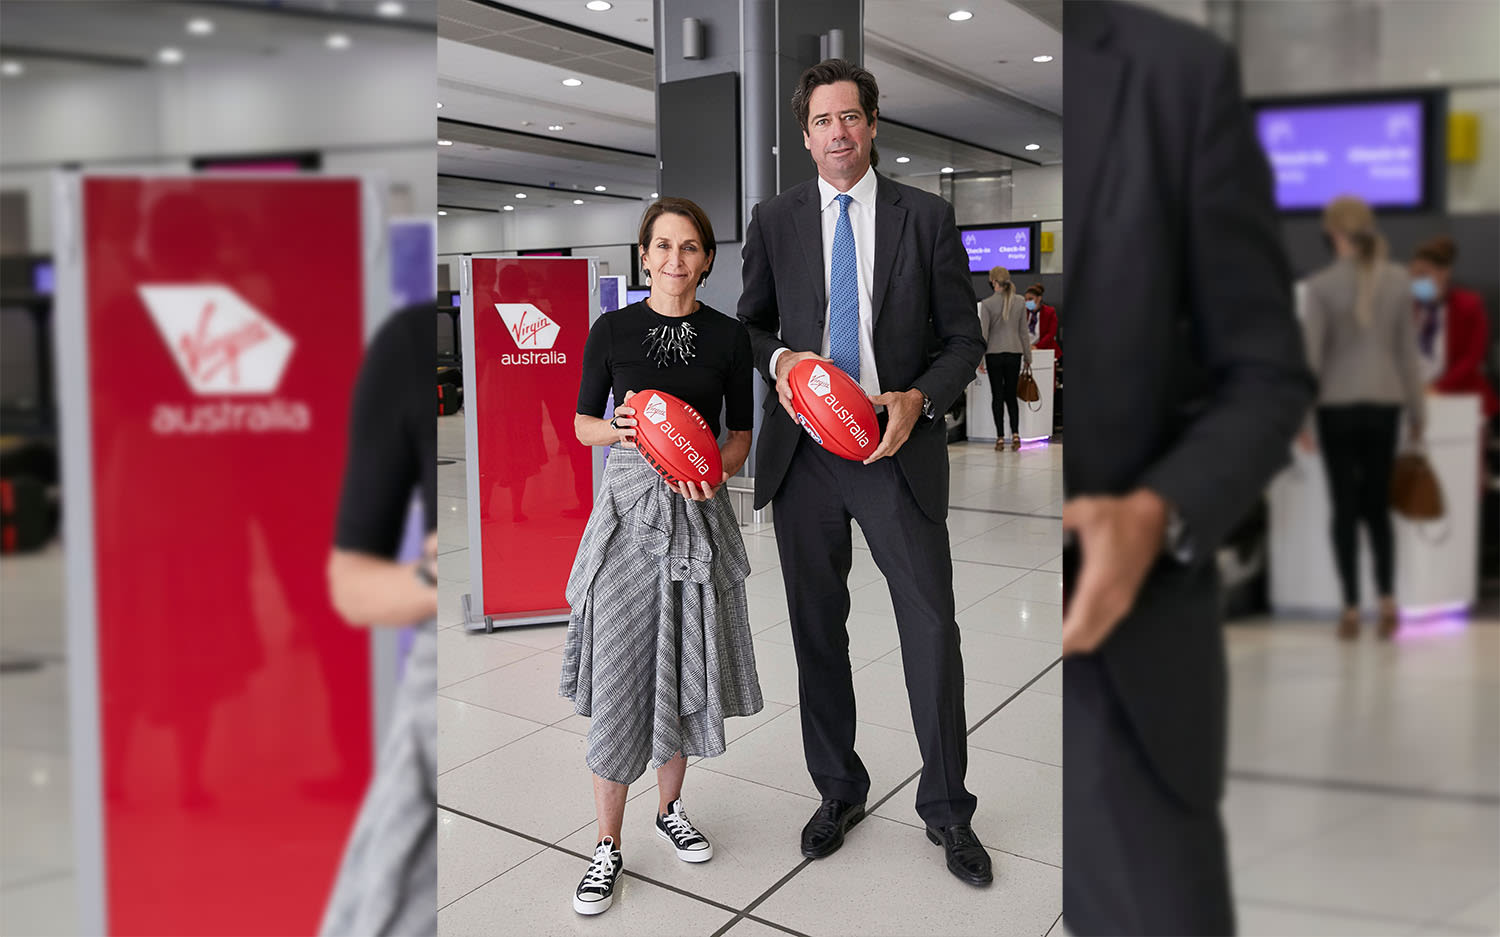 Virgin Australia CEO Jayne Hrdlicka and AFL CEO Gillon McLachlan holding footballs in the departure hall at Melbourne Airport